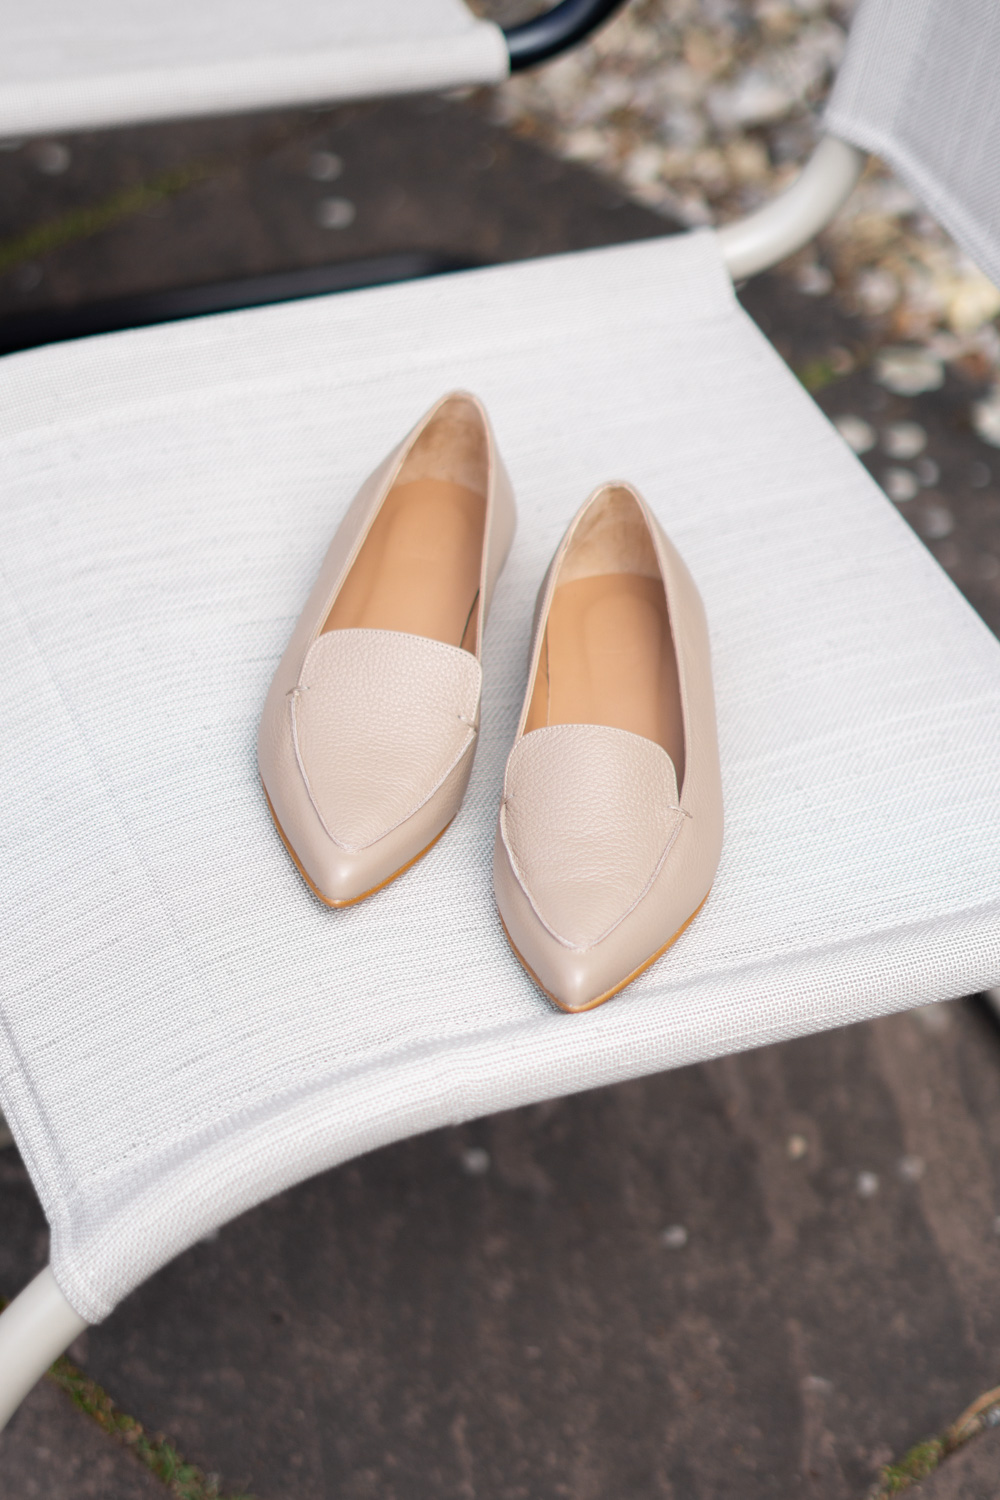 Flattered Footwear For The Contemporary Soul Rg Daily